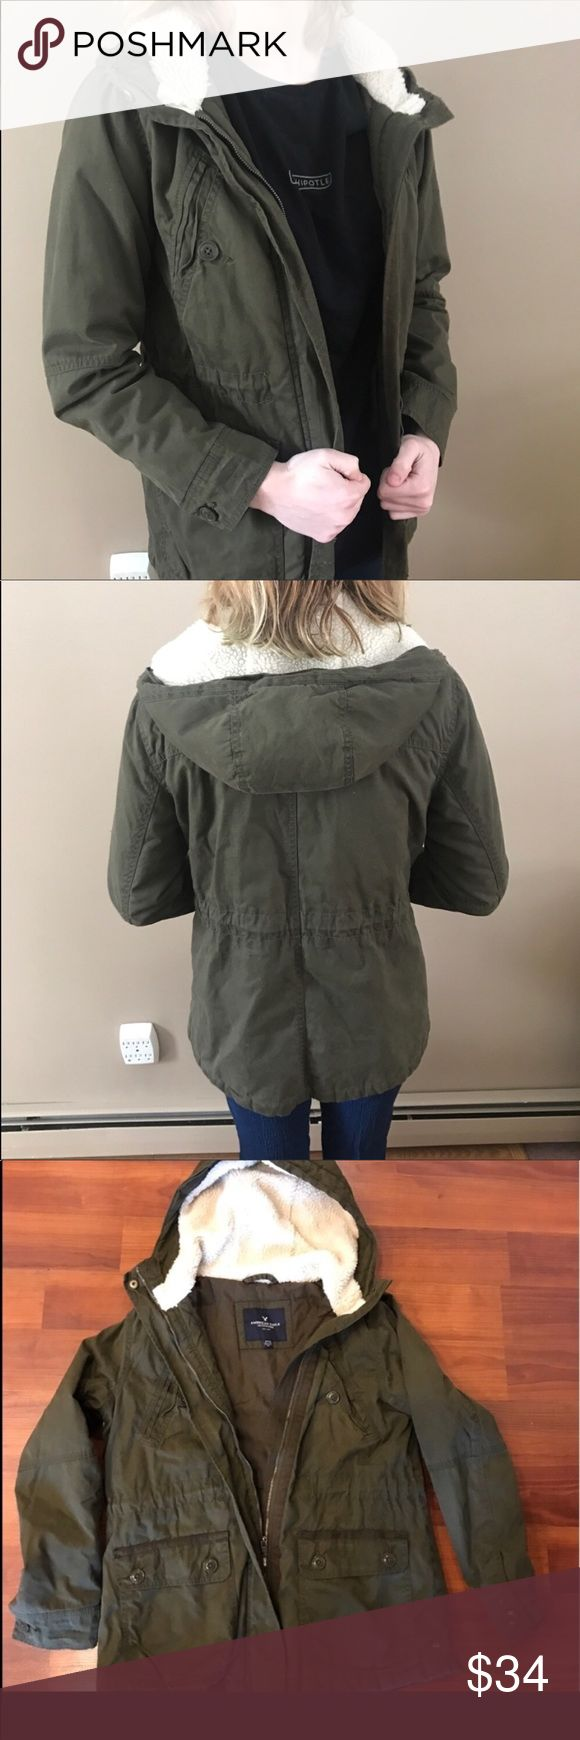 AMERICAN EAGLE OUTFITTERS ARMY GREEN COAT/JACKET Army green with a white Sherpa hoodie. Model is 5'6 and wears a small American Eagle Outfitters Jackets & Coats #americaneagleoutfitters